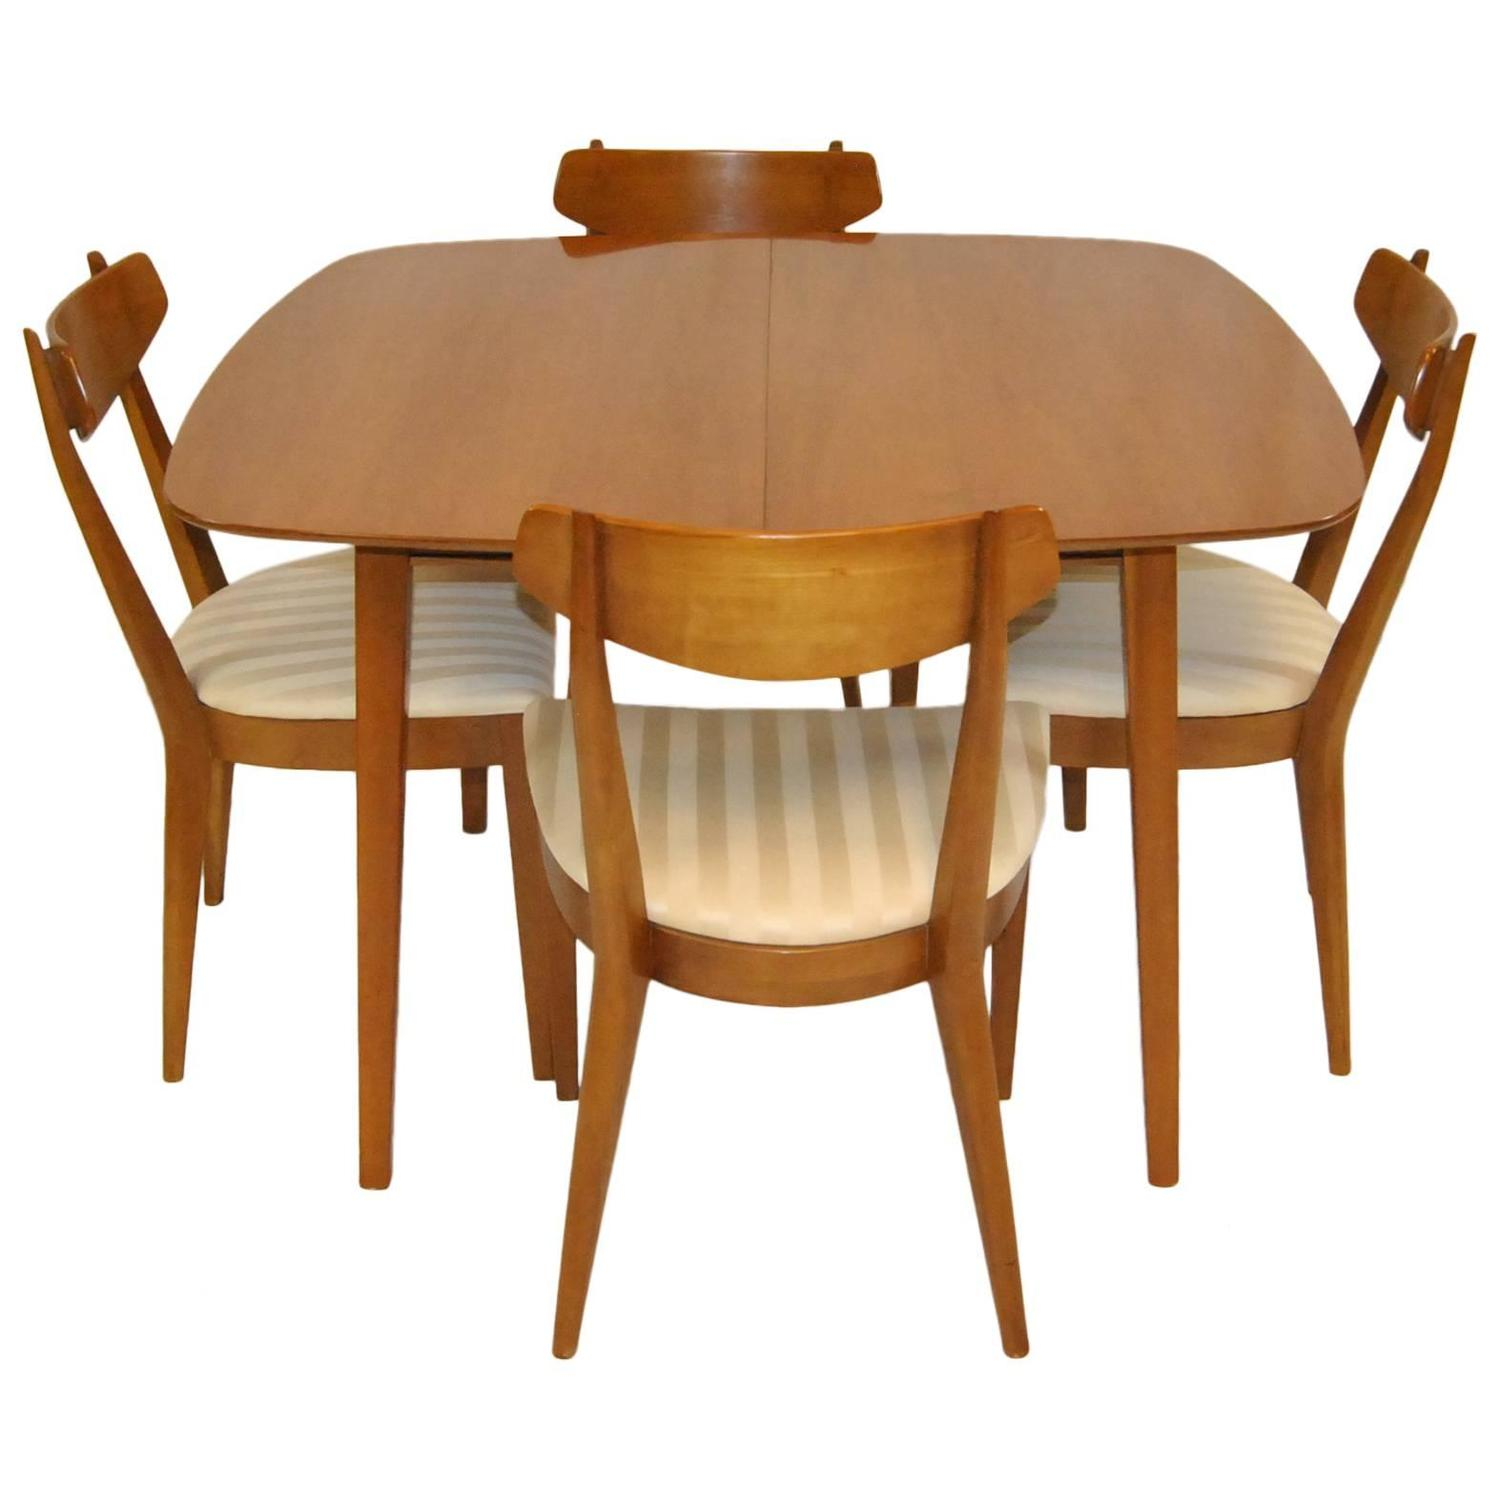 Etonnant Mid Century Modern Dining Set By Kipp Stewart For Drexel, Sun Coast  Collection At 1stdibs